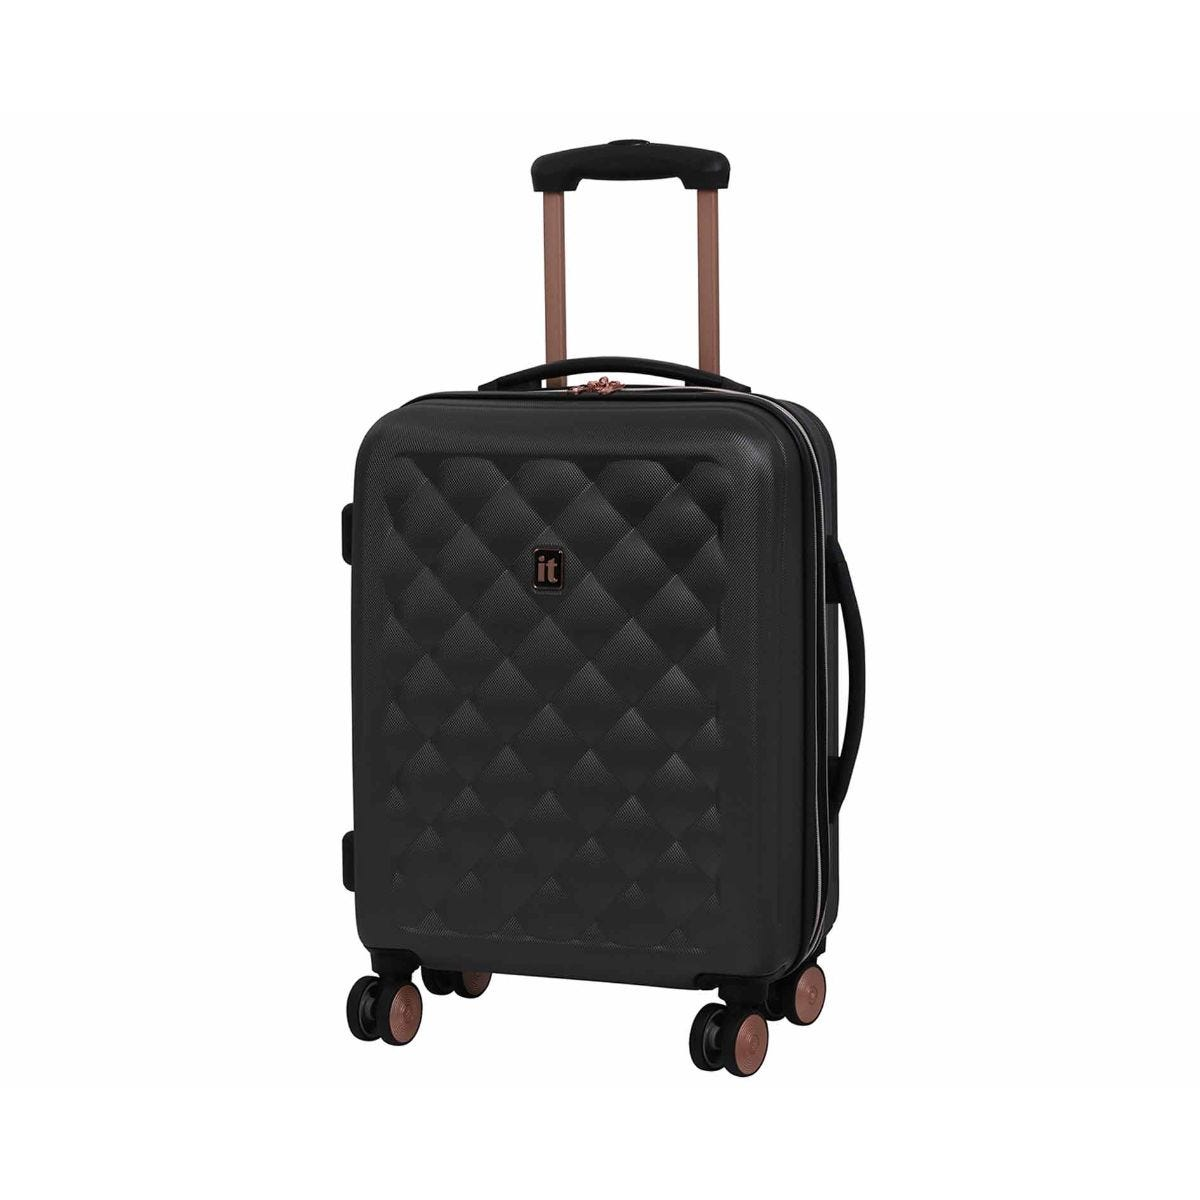 a81994d9c Suitcases Bags & Luggage Stationery - Ryman